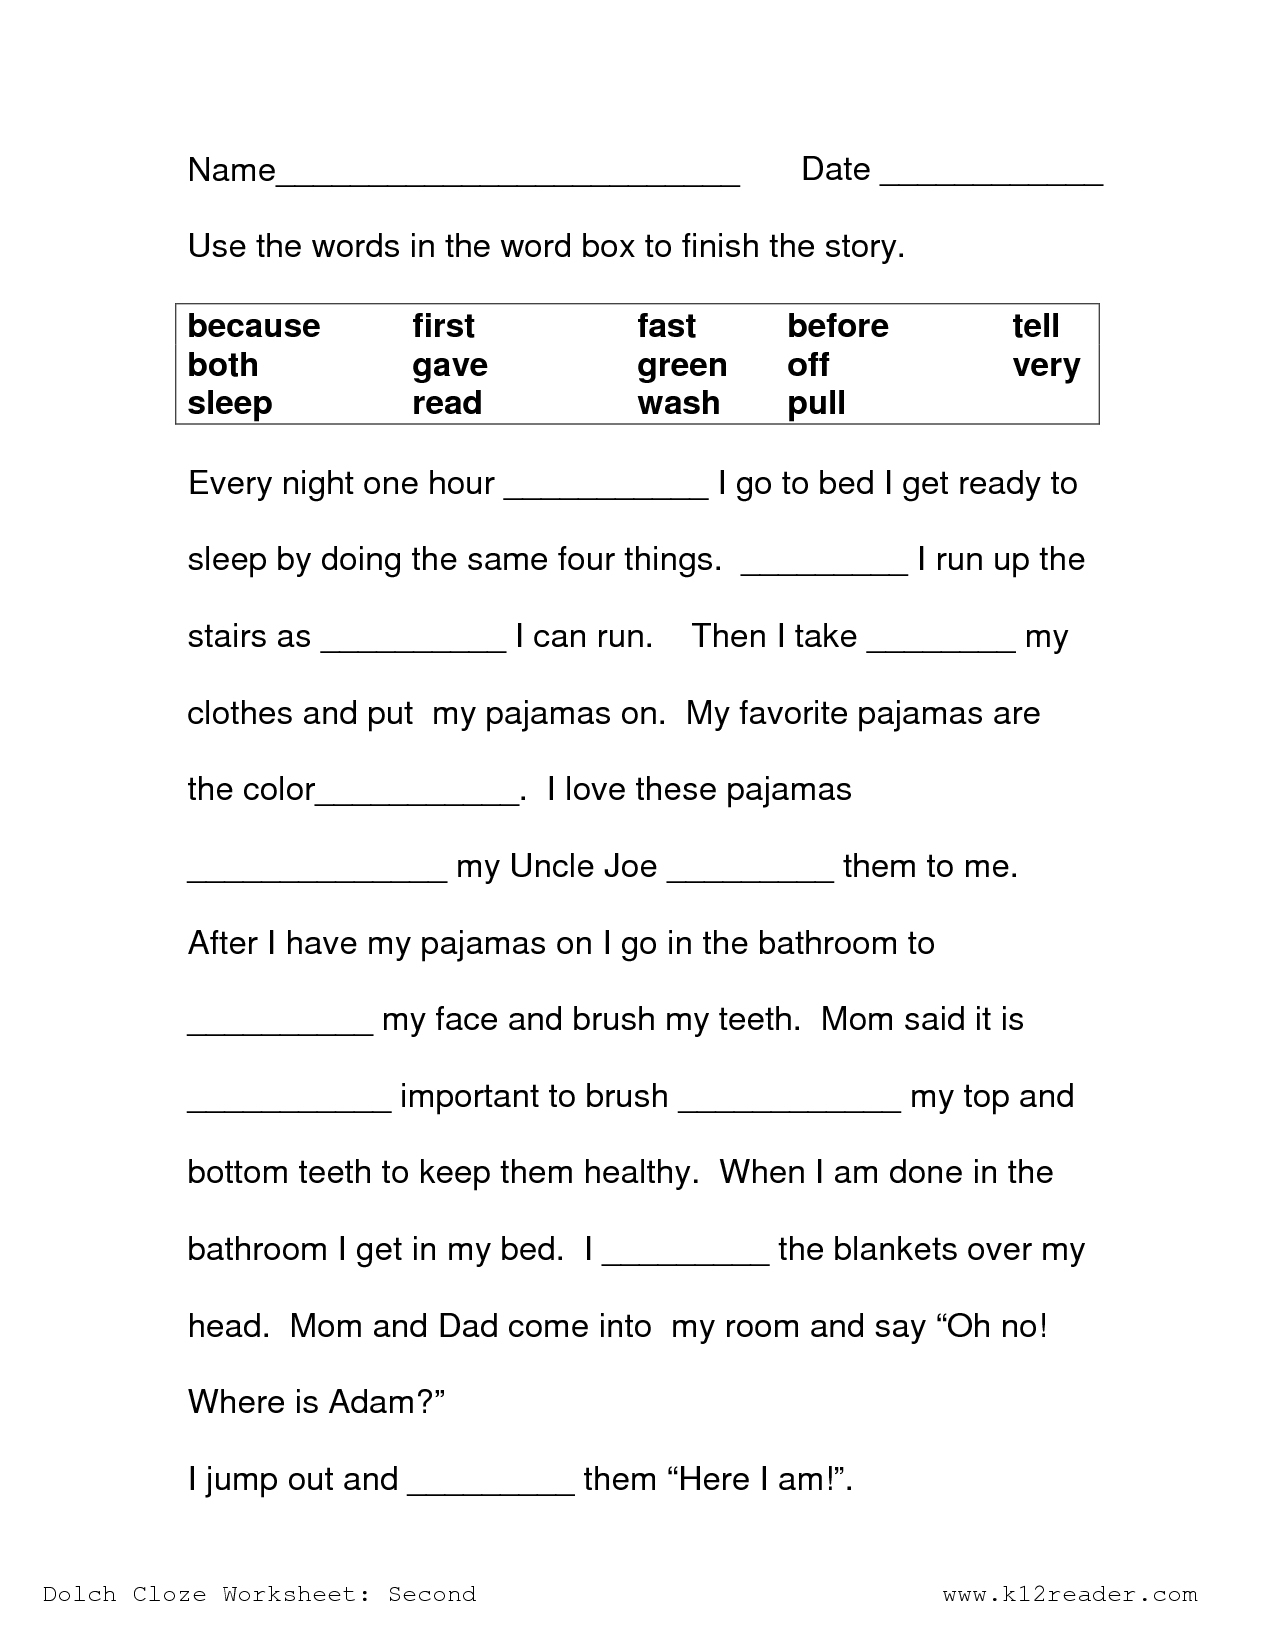 Math Worksheet: 2Nd Grade Science Worksheets Free Printable Easy | Science Worksheets For 4Th Grade Free Printable